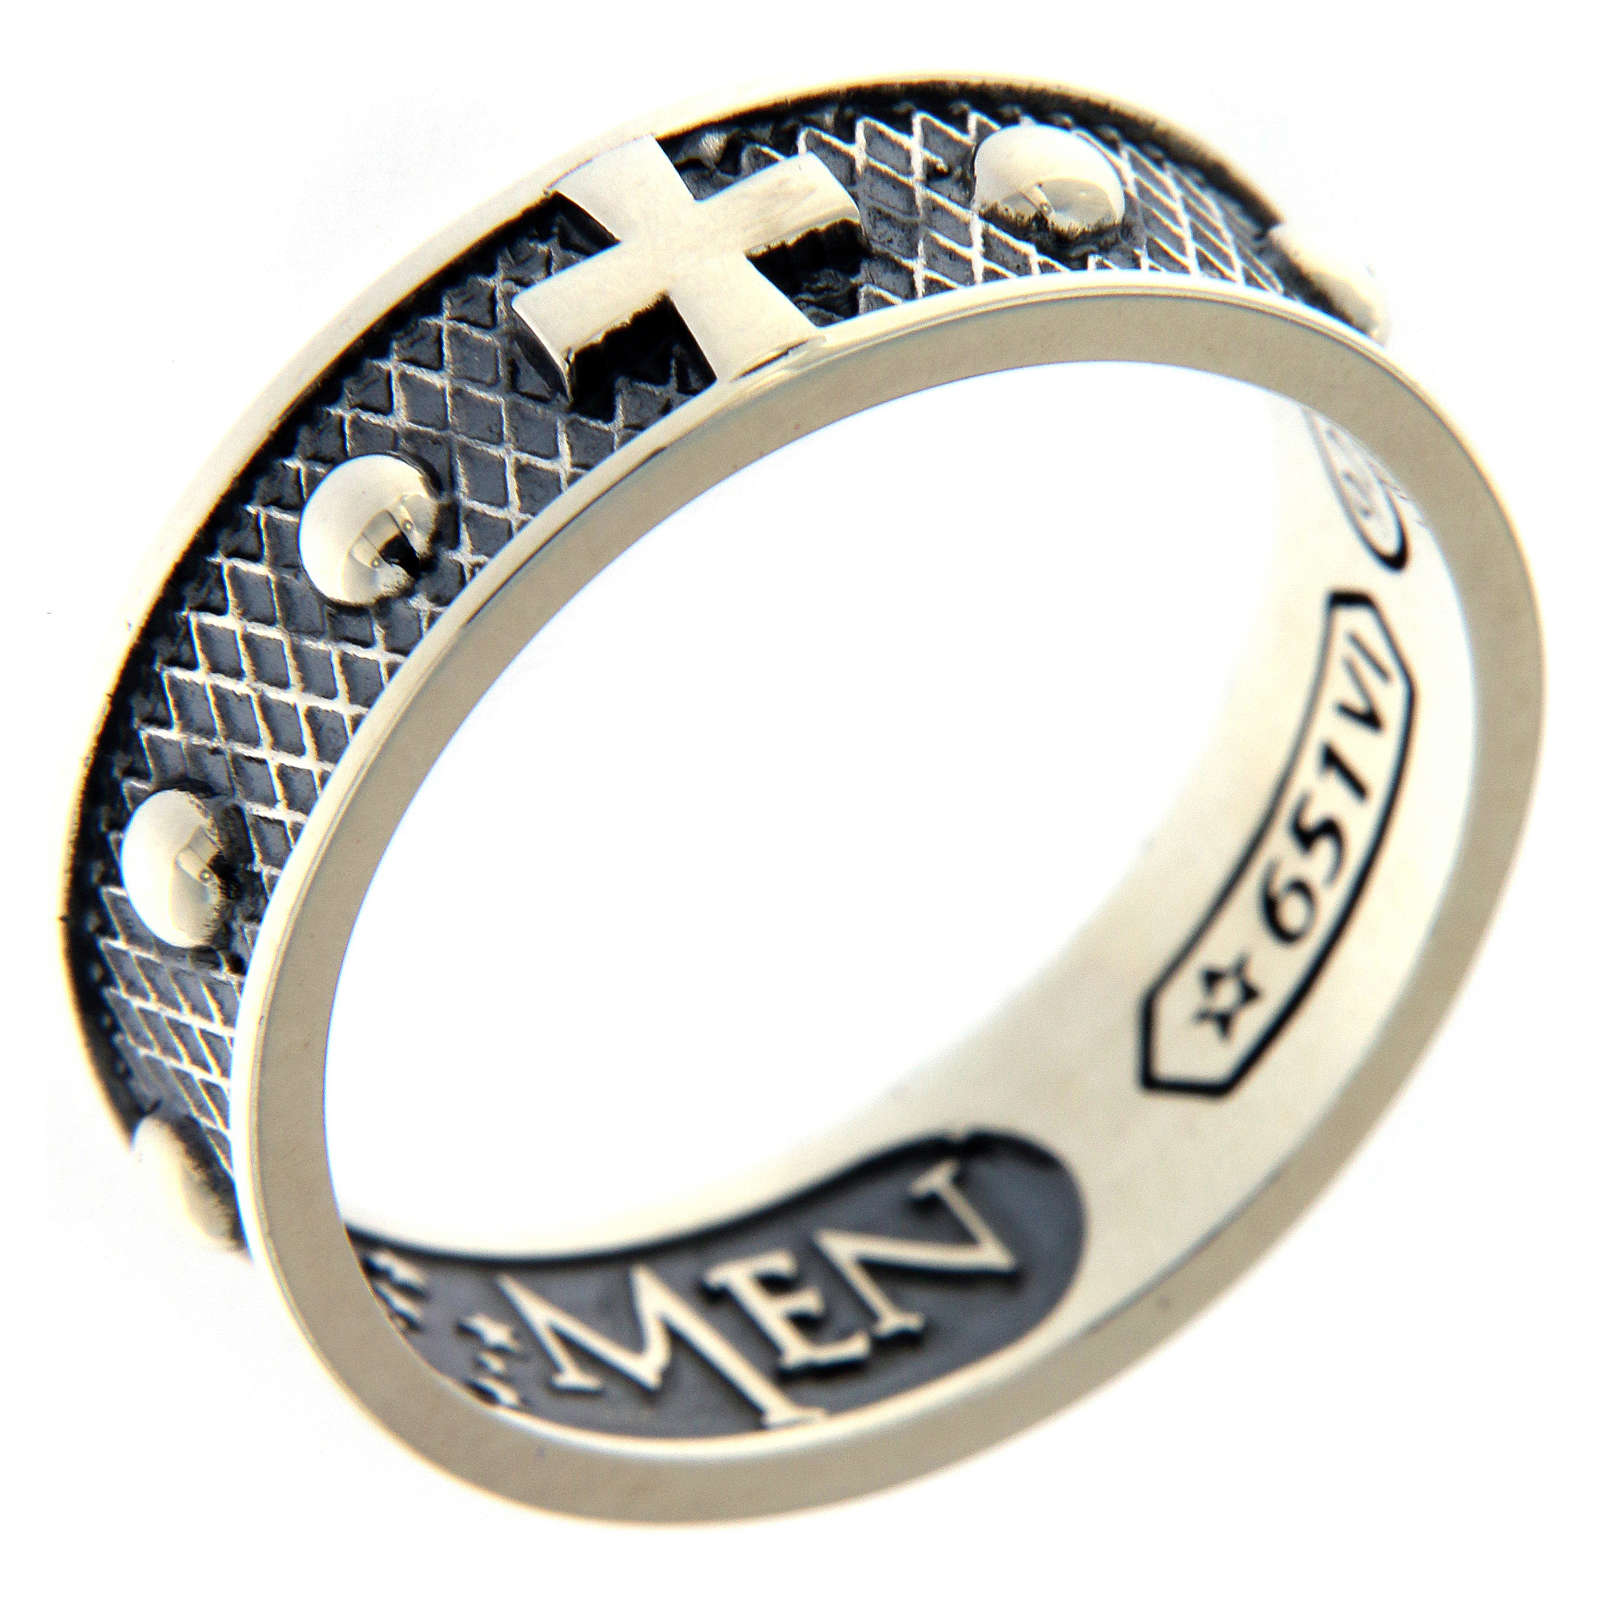 AMEN ring in burnished 925 silver 3